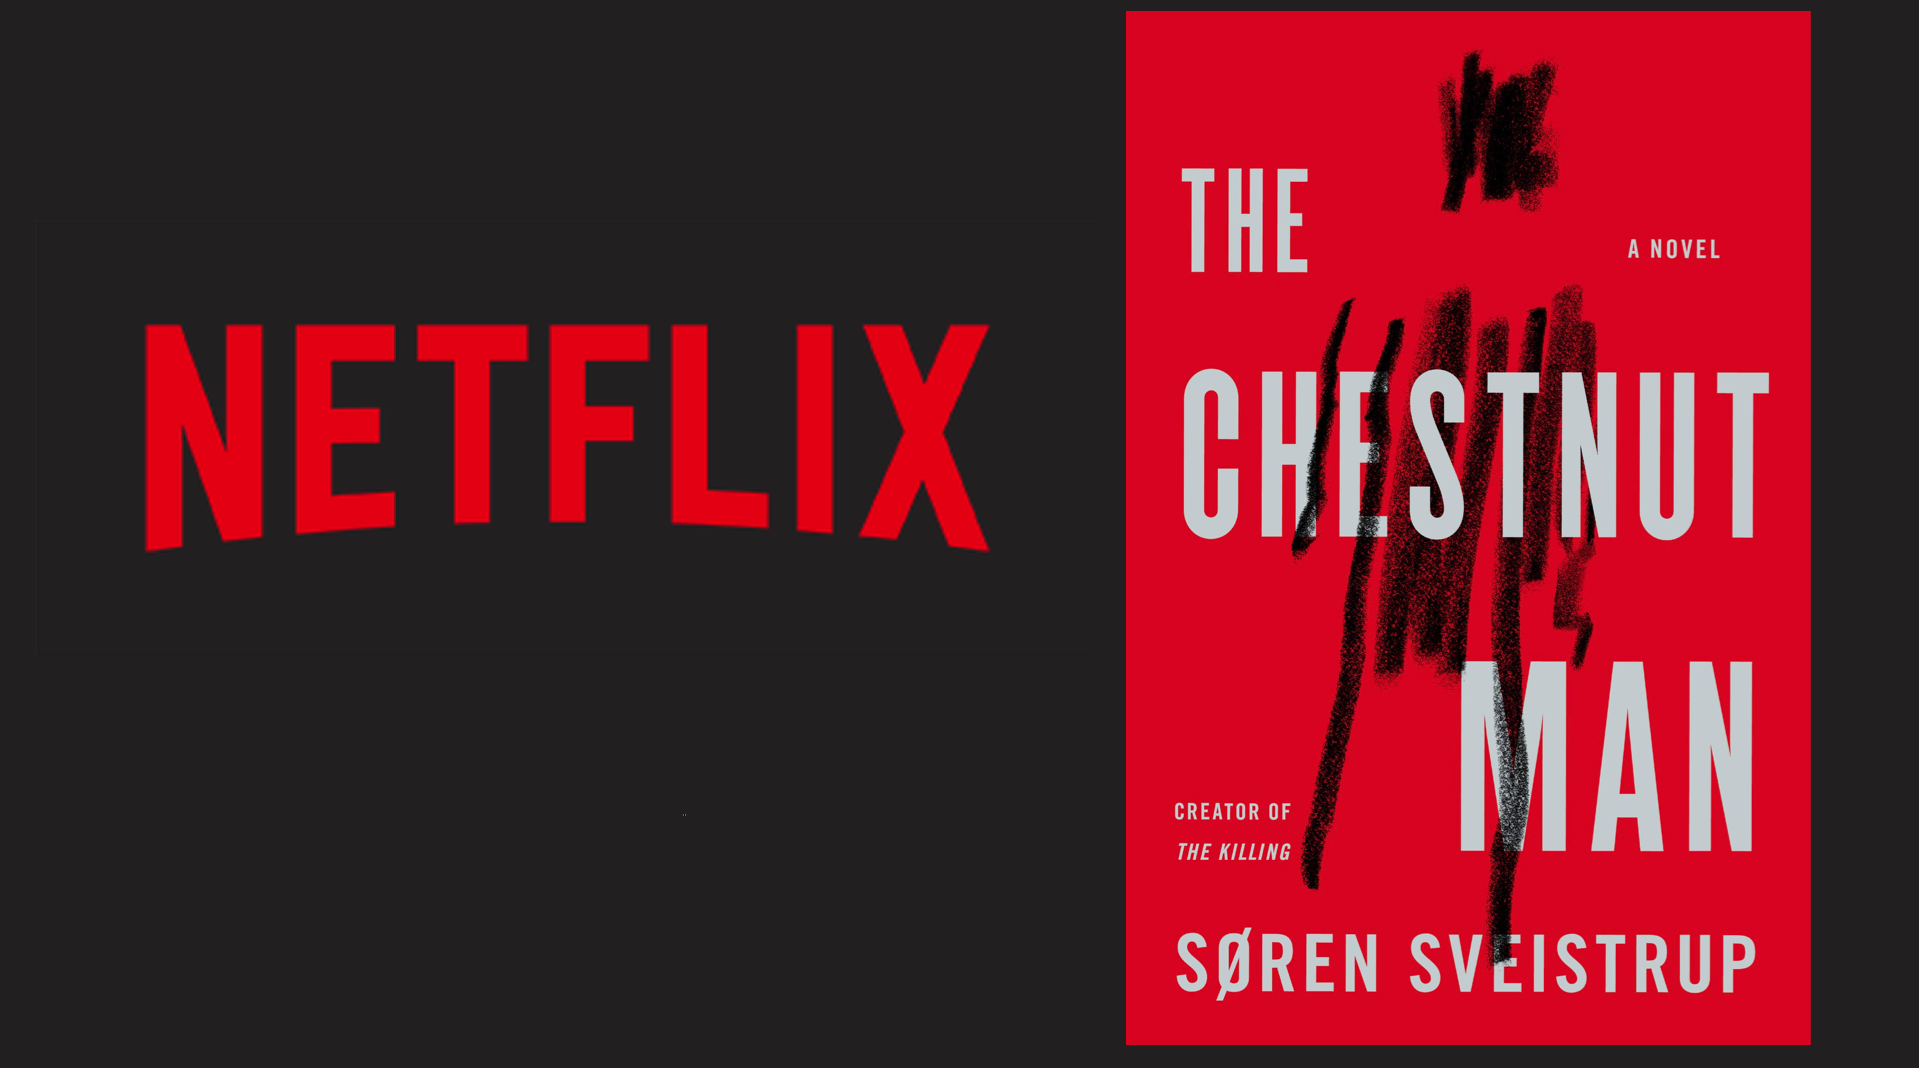 """Netflix's """"The Chestnut Man"""" Release Date - When Is the chilling and suspenseful thriller Coming On Netflix?"""